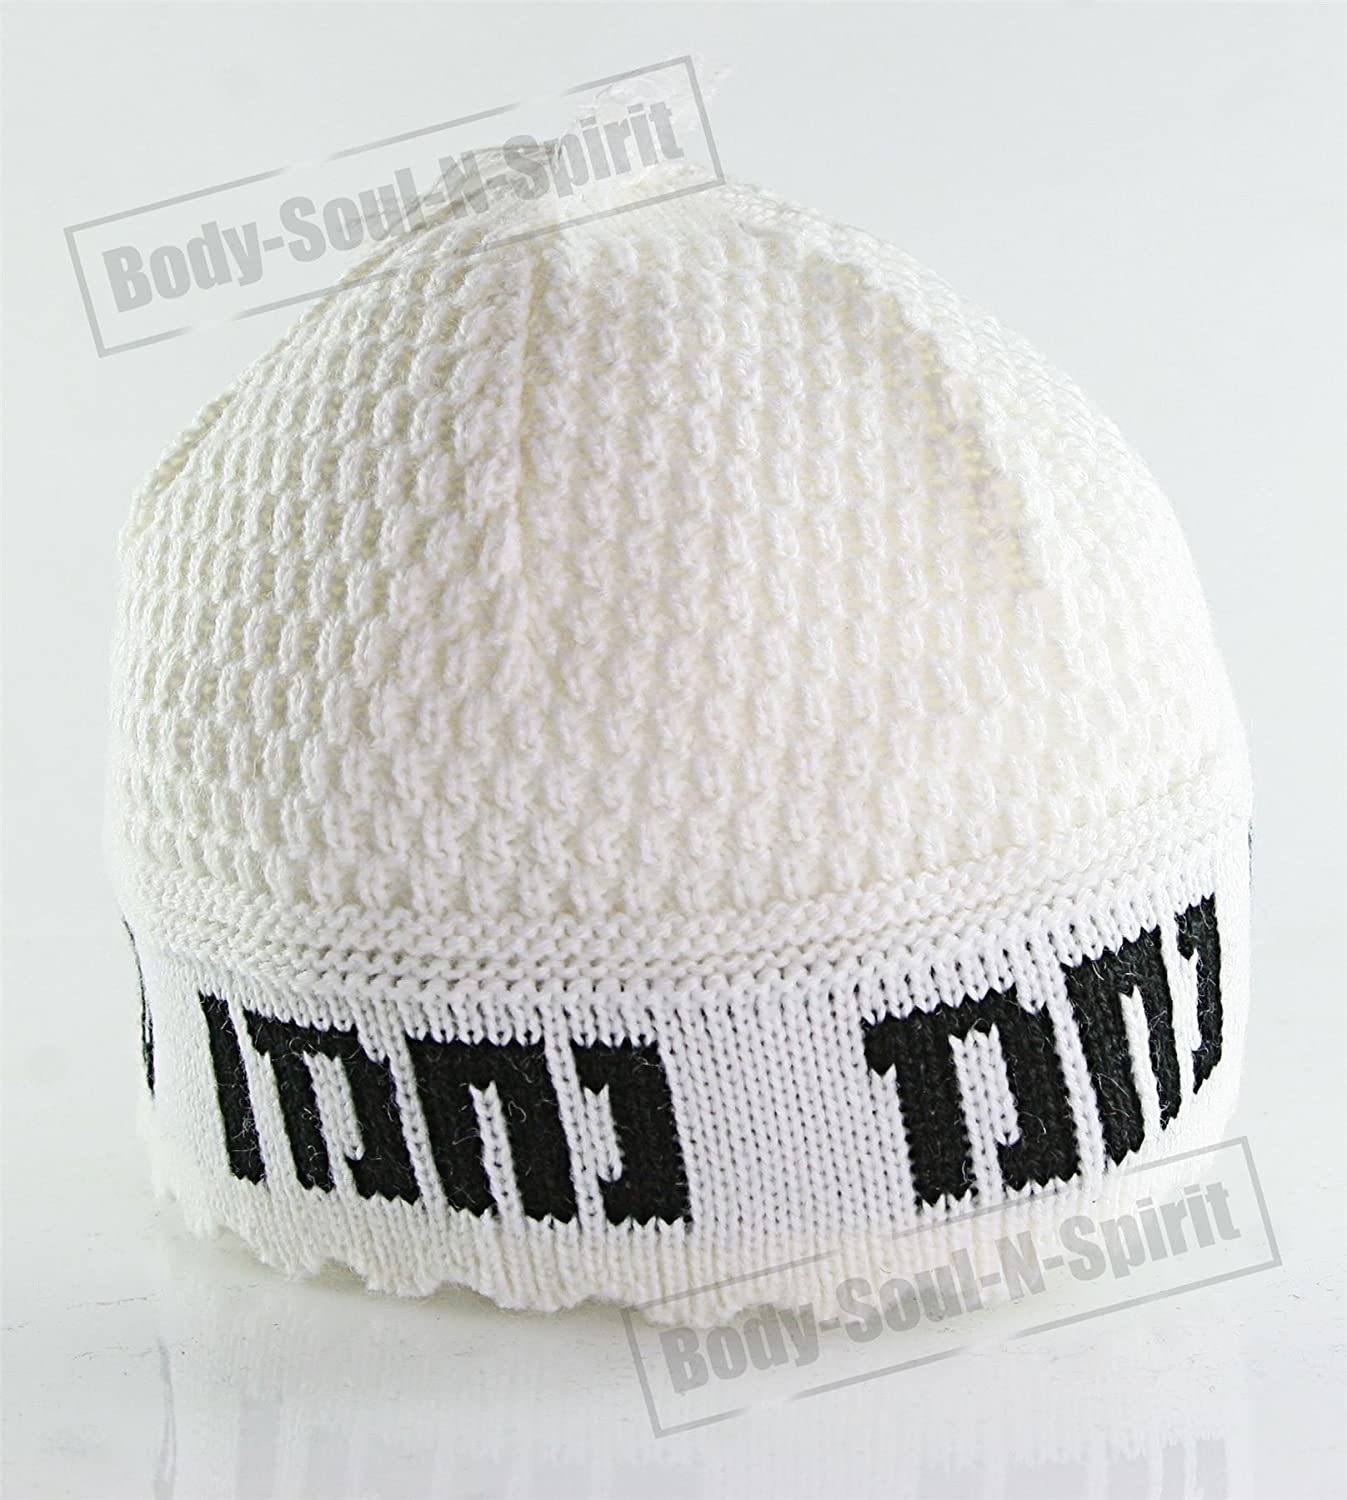 Amazon.com: Rabbi Nachman White Knitted Kippah Yarmulke Tribal ...